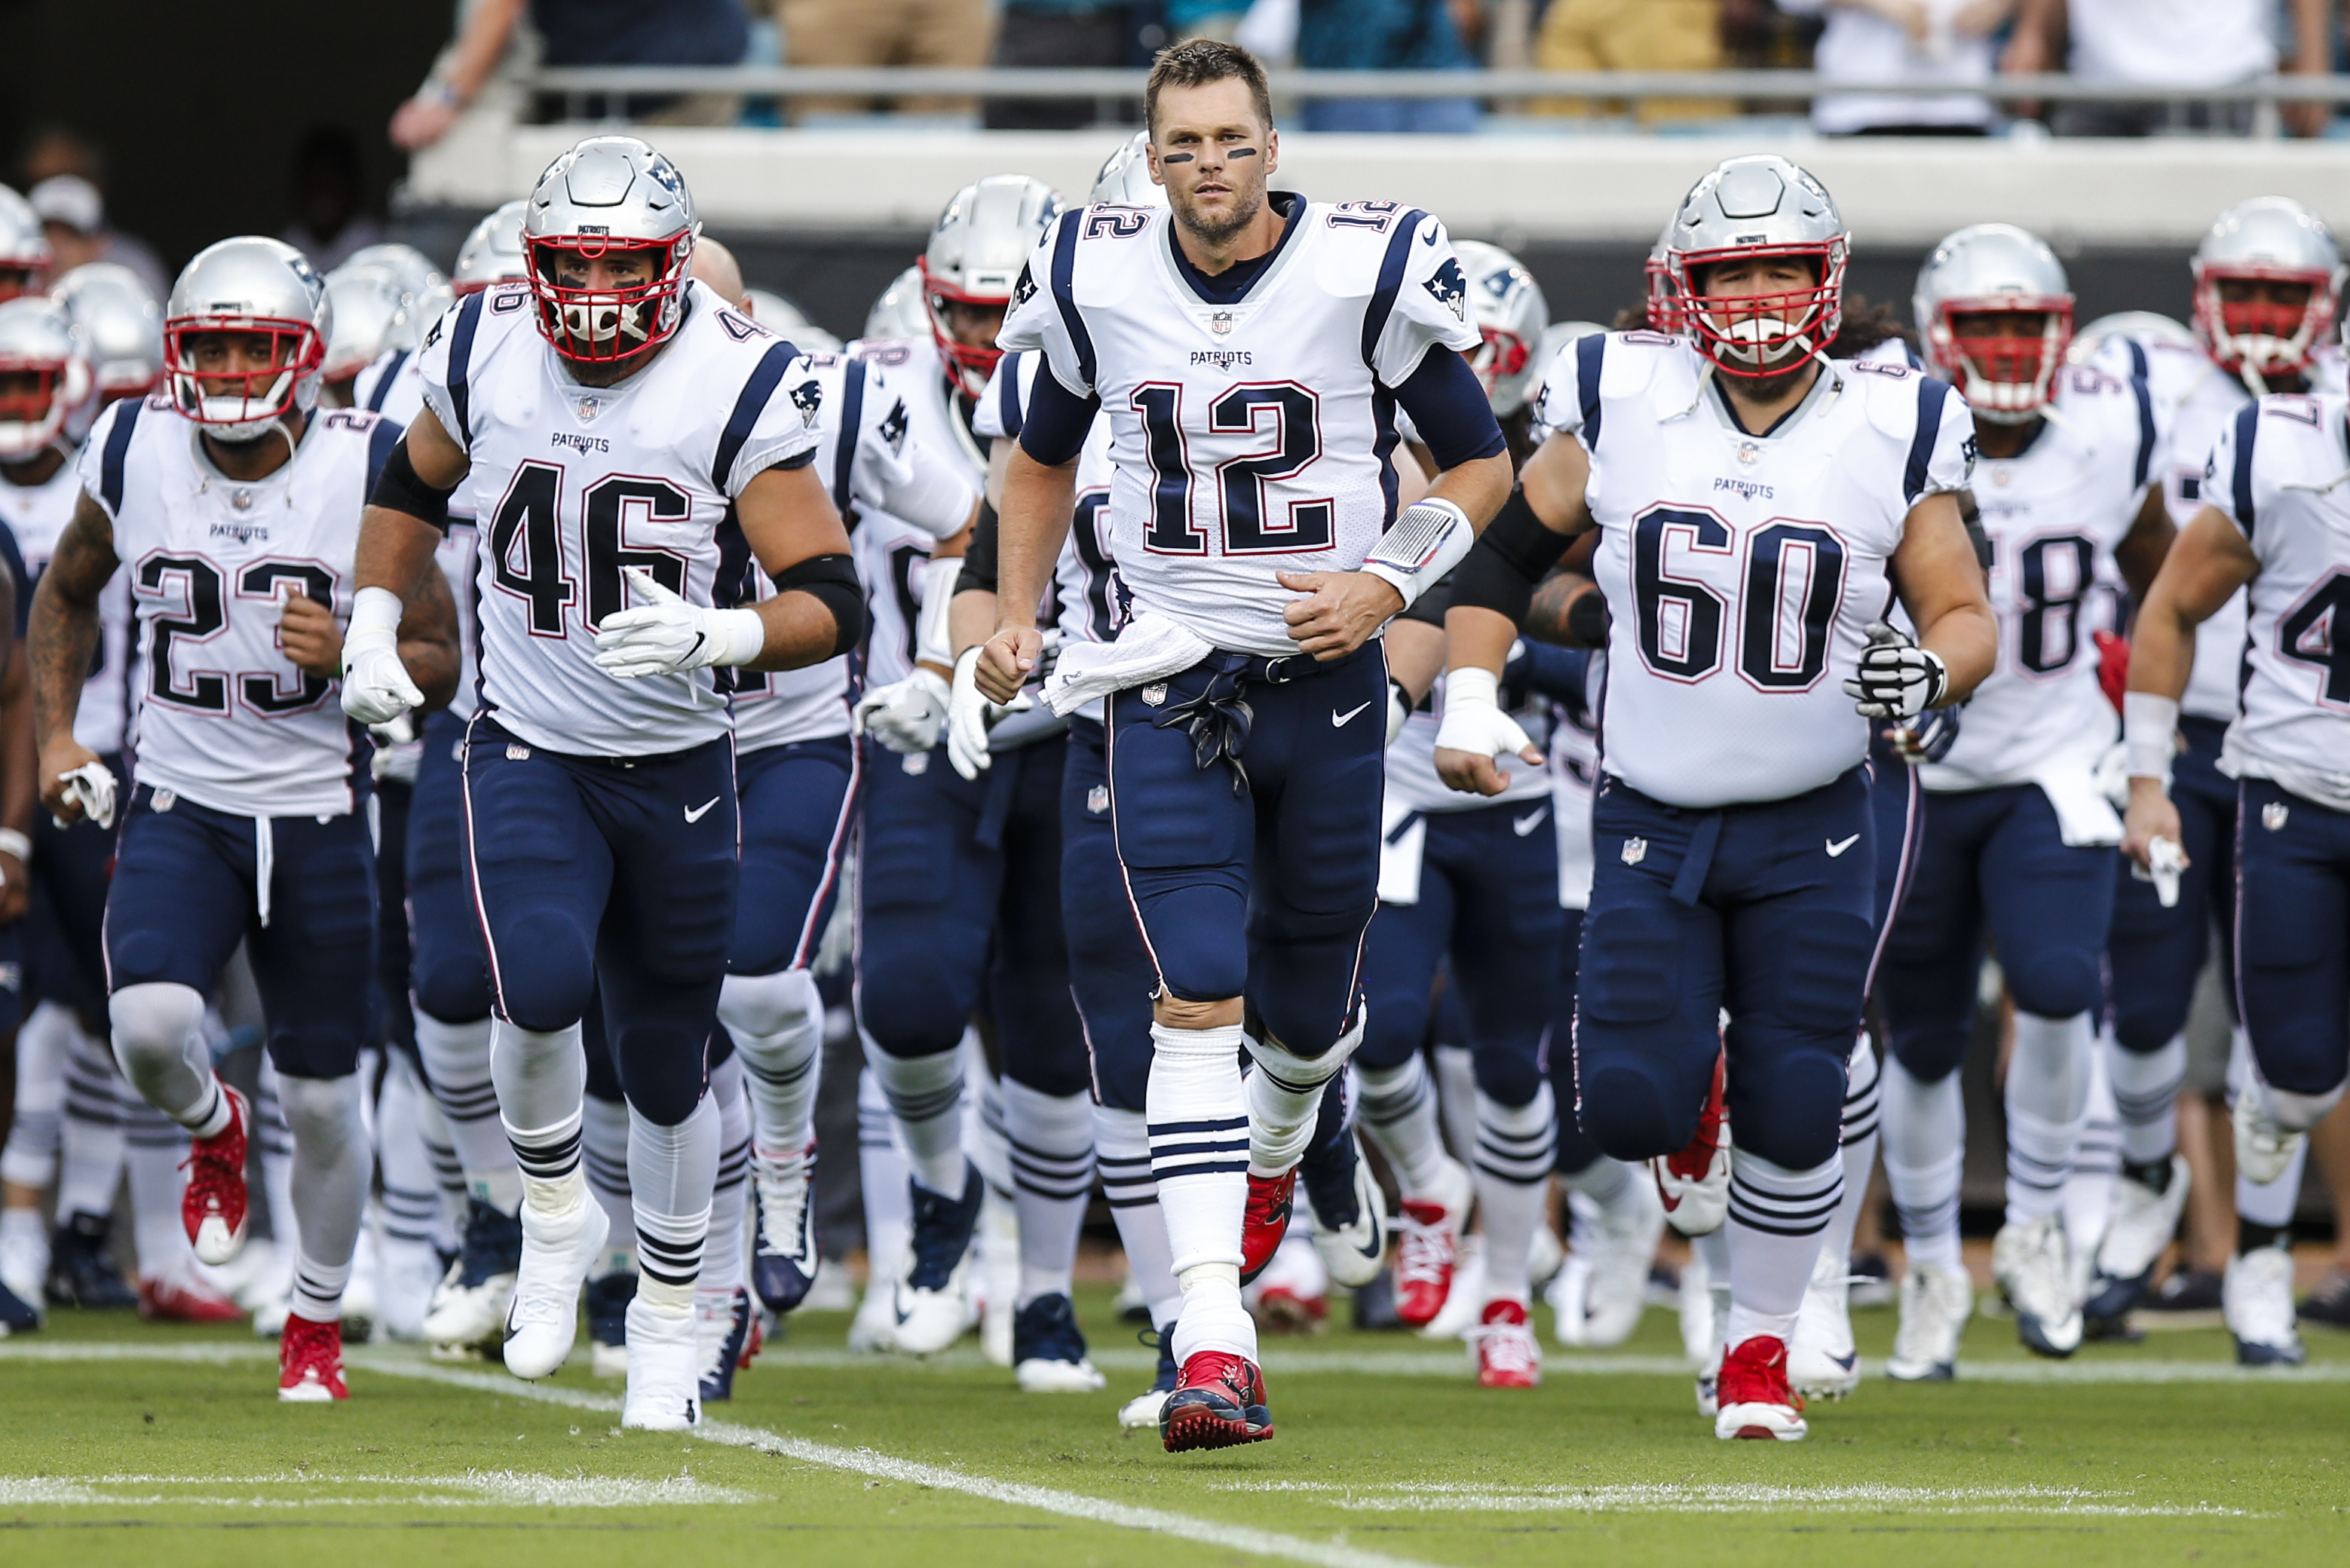 New England Patriots quarterback Tom Brady (12) leads the team out prior to the game between the New England Patriots and the Jacksonville Jaguars on September 16, 2018 at TIAA Bank Field in Jacksonville, Fl.